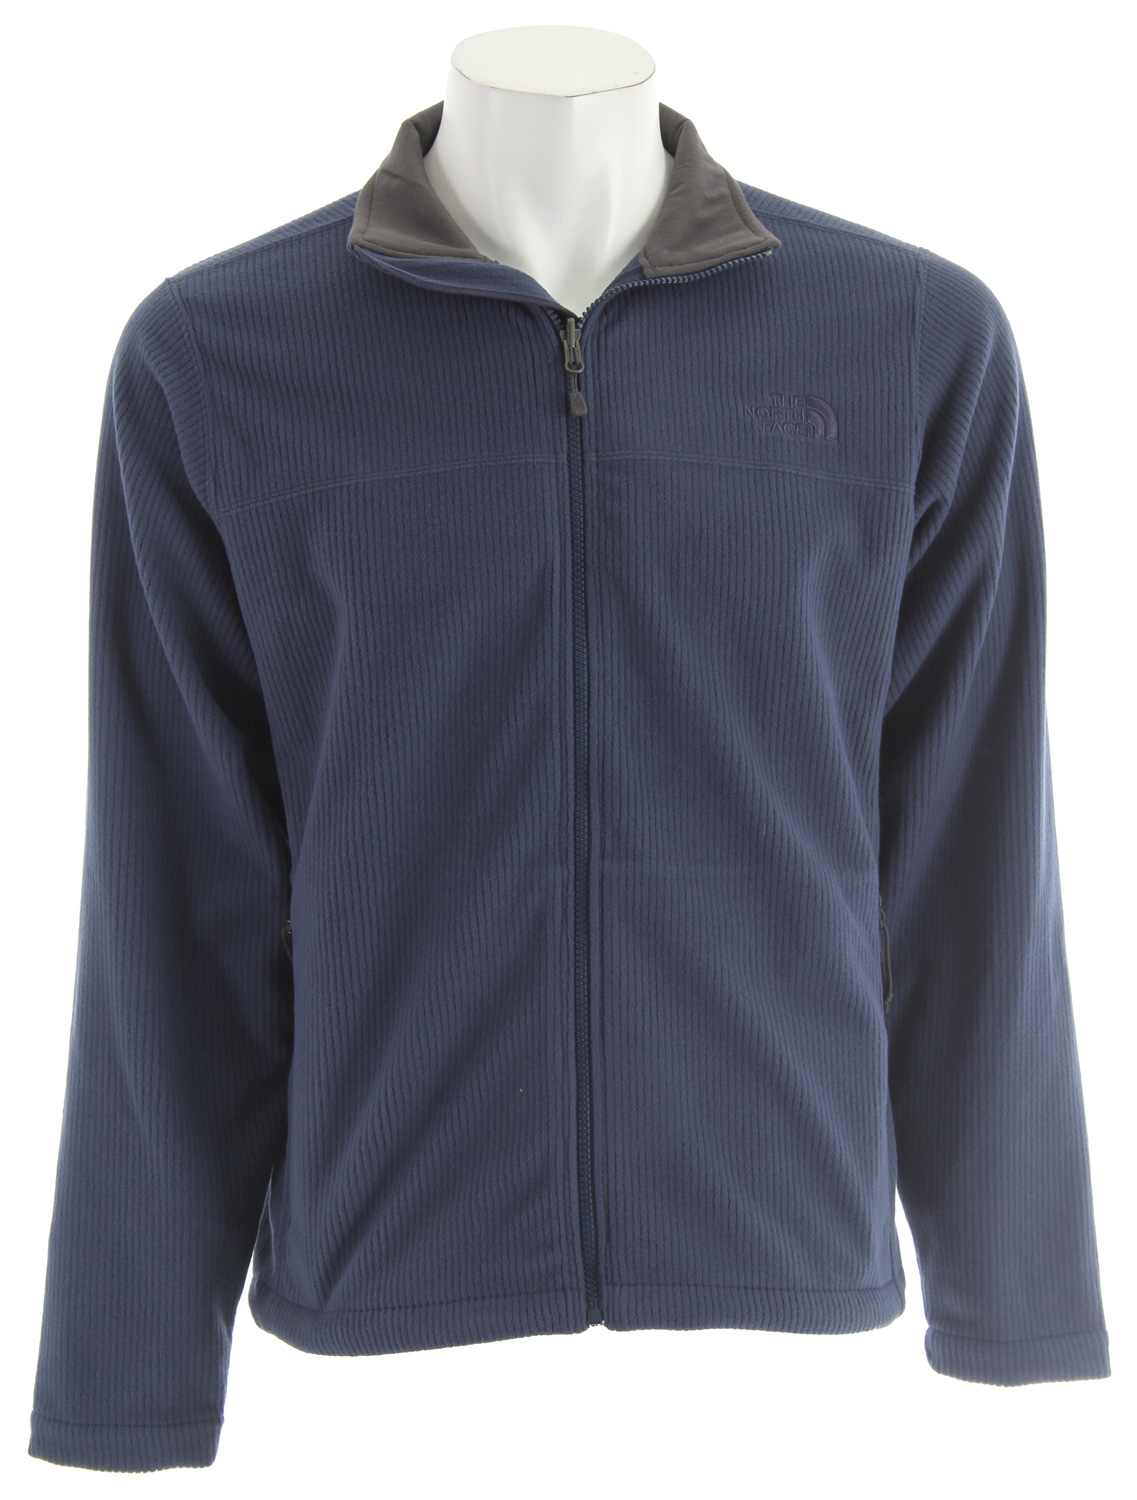 Perfect for days with a chill in the air, this mid-to-lightweight streamlined cord-fleece jacket features a subtle pinstripe exterior for a business-only look. Cord-fleece is short for corduroy-fleece in case you were wondering.Key Features of The North Face Fly Fleece Jacket: Two hand pockets Hem cinch-cord Standard fit Zip-in compatible - $59.95